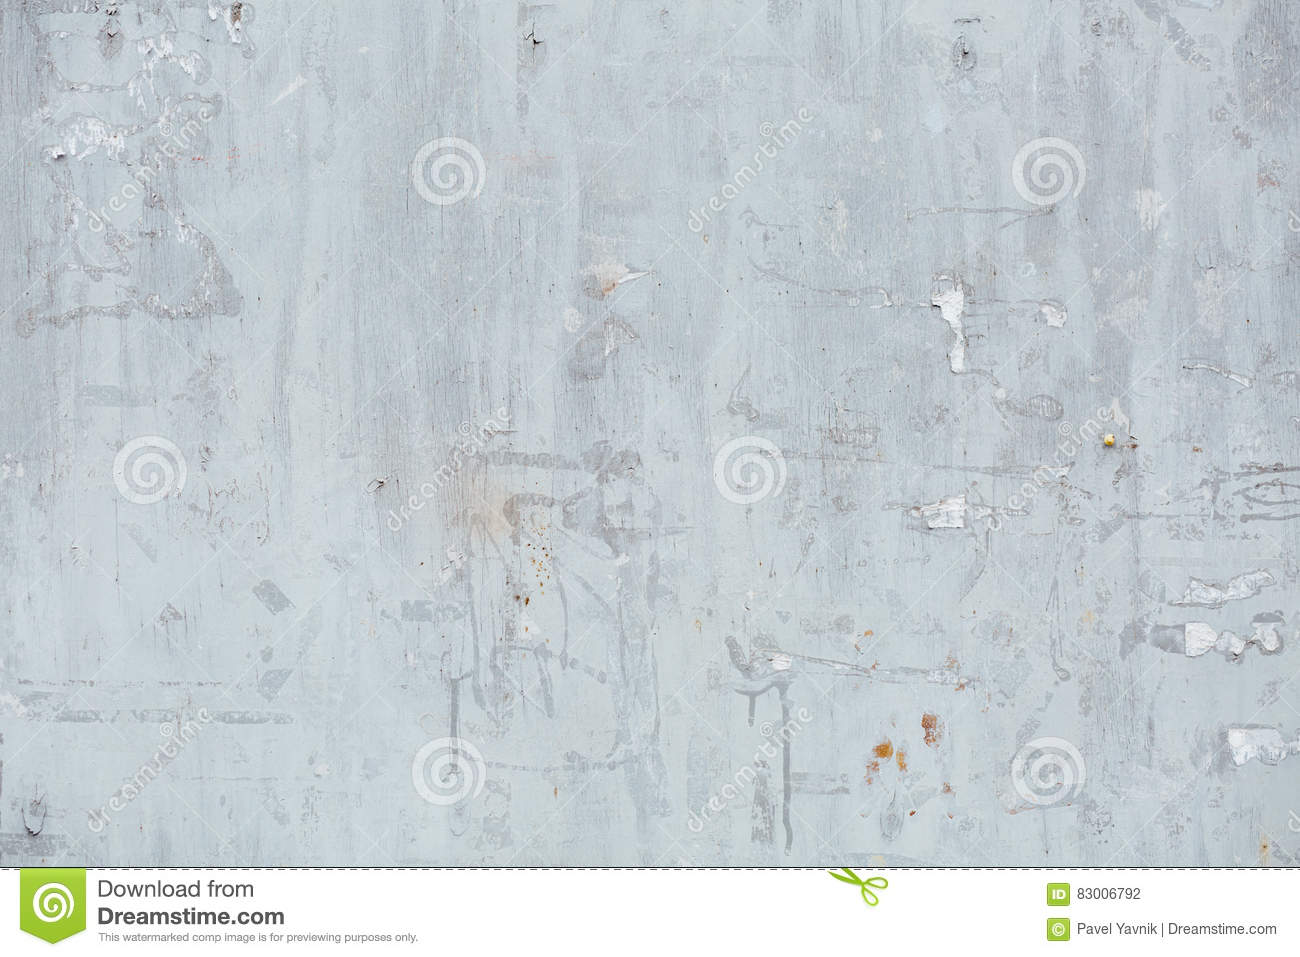 Close Up Of Chipped Blue ling Paint, Torn Ads Exterior Wall ... on coarse-textured exterior paint, exterior brick wall paint, waterproof exterior paint, exterior concrete wall paint, texture your walls paint,